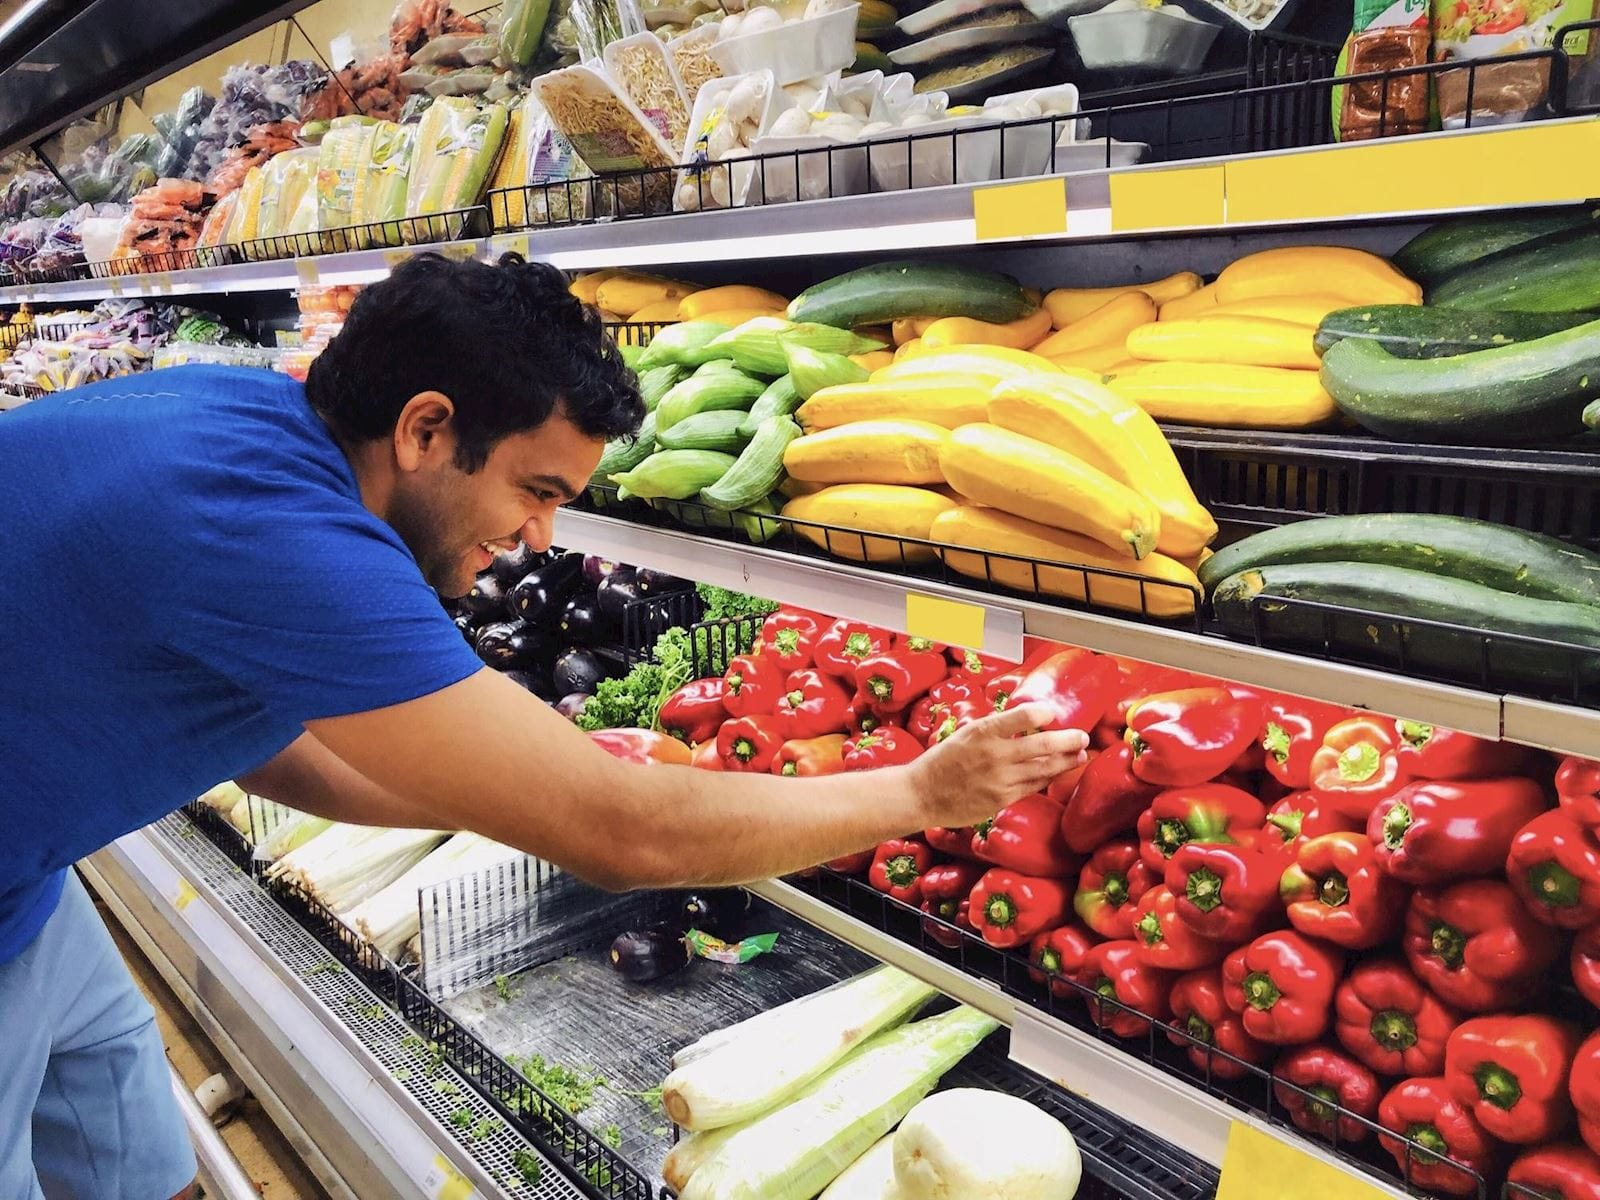 man selects red pepper from produce section at grocery store